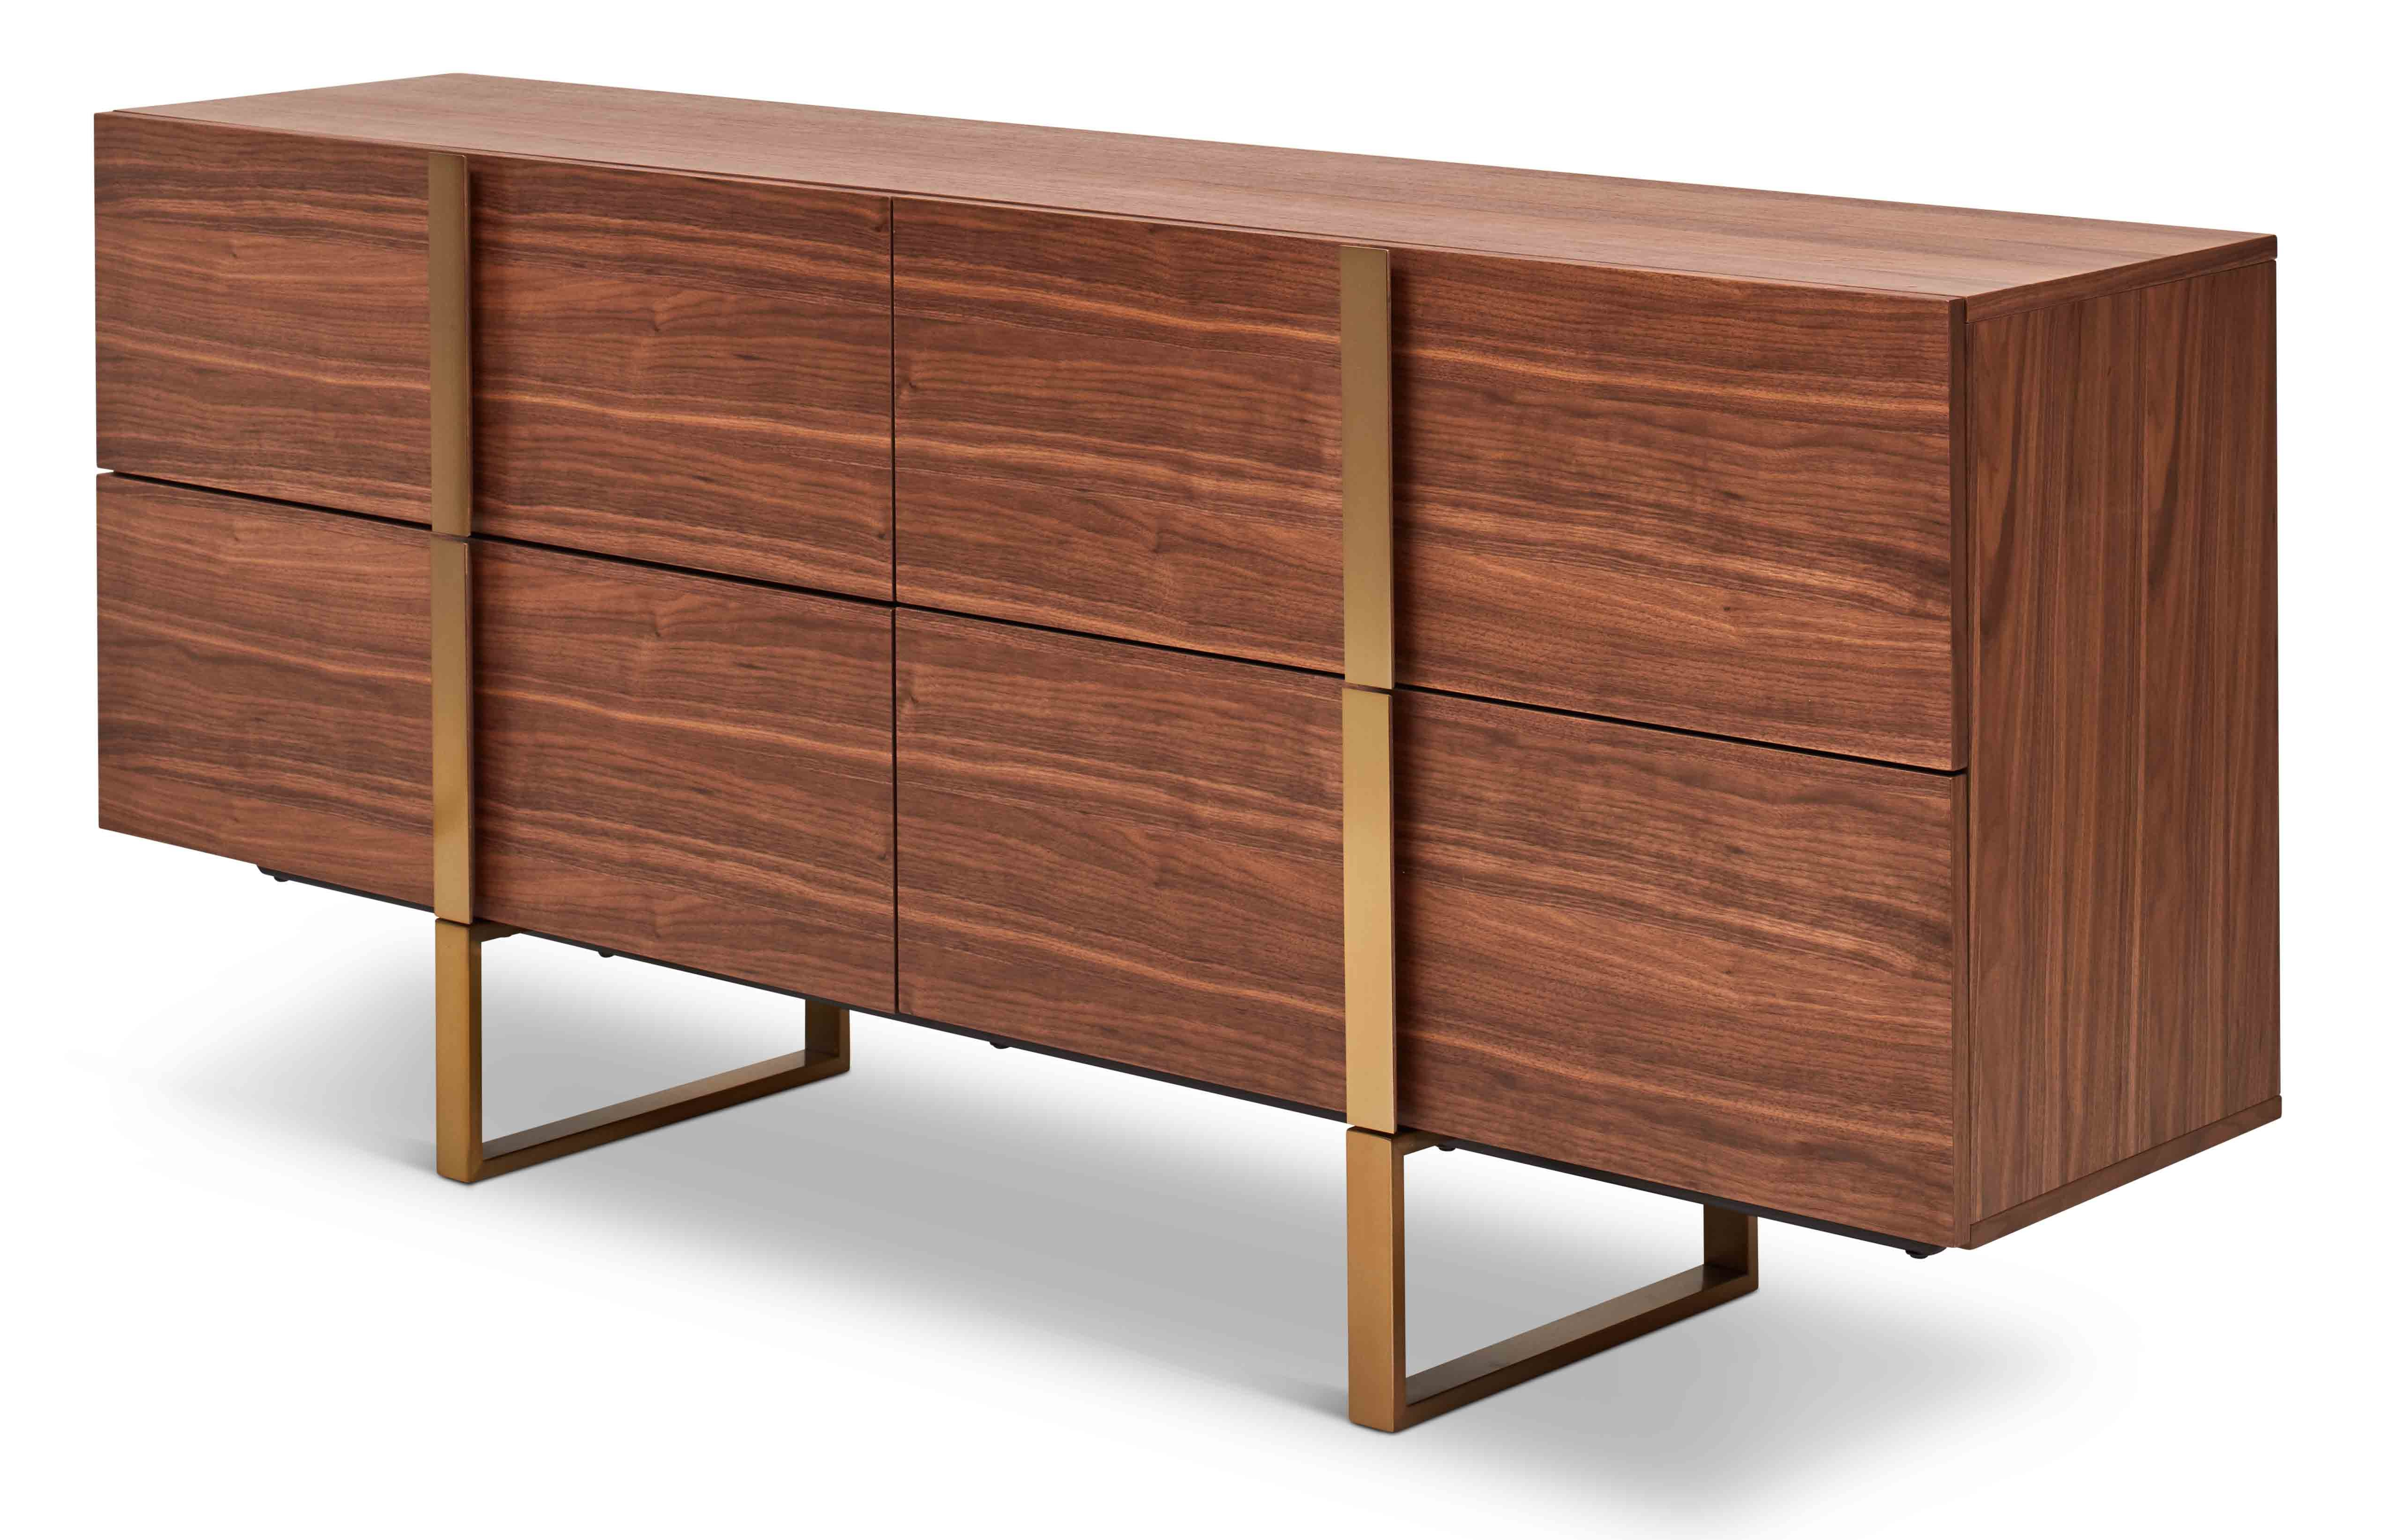 Modern Sideboards + Buffets | Allmodern Intended For Casolino Sideboards (View 13 of 20)